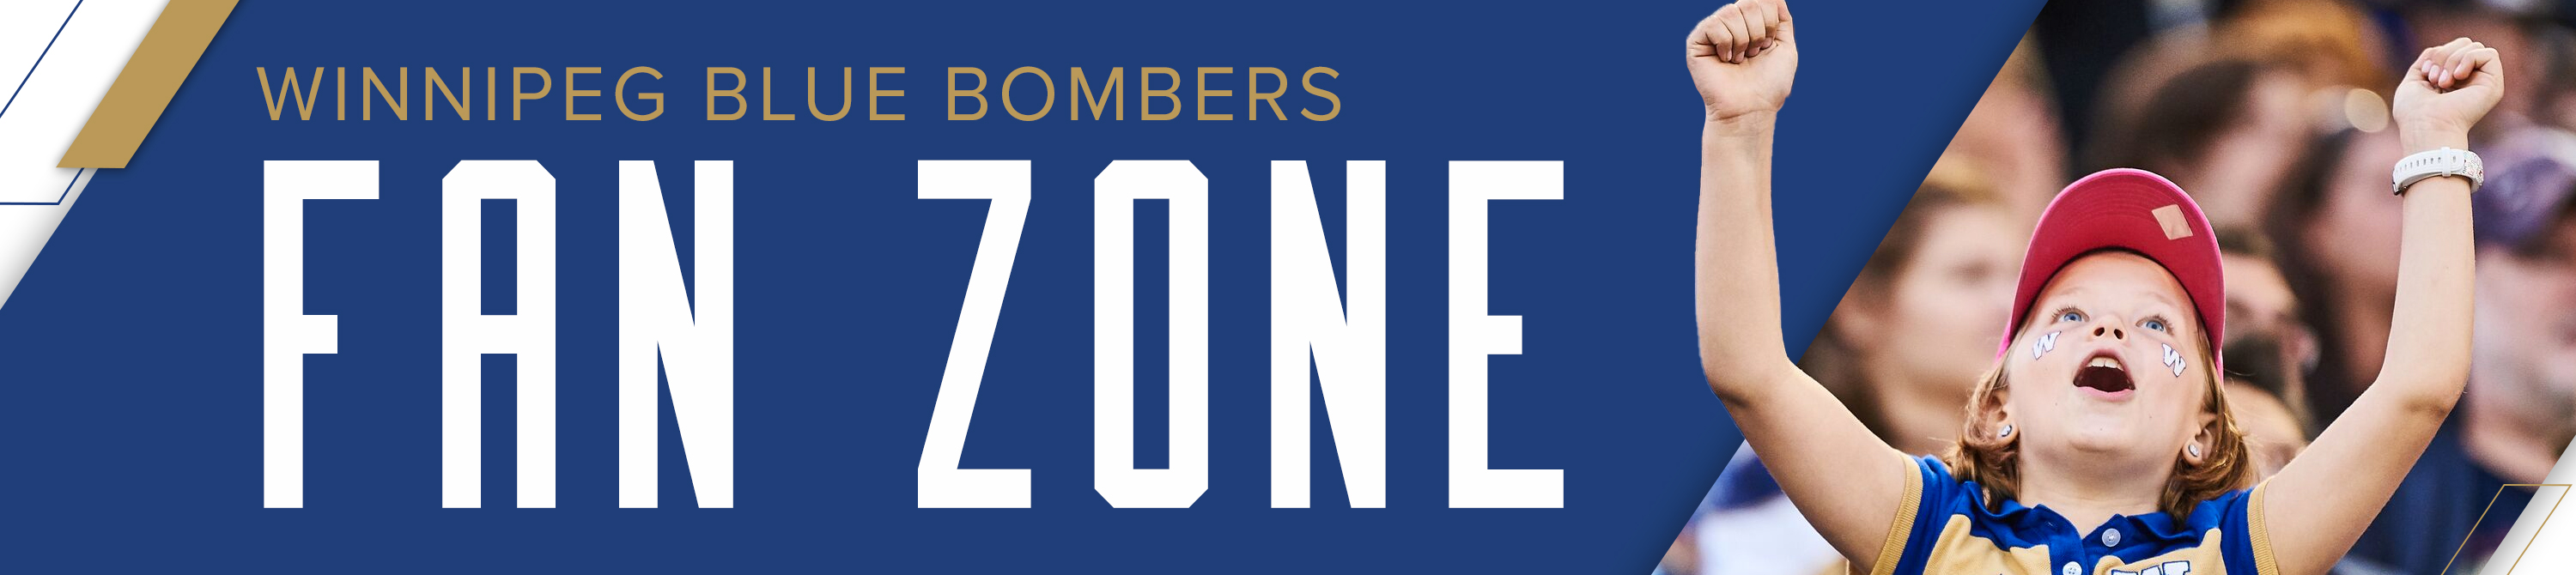 Winnipeg Blue Bombers Fan Zone